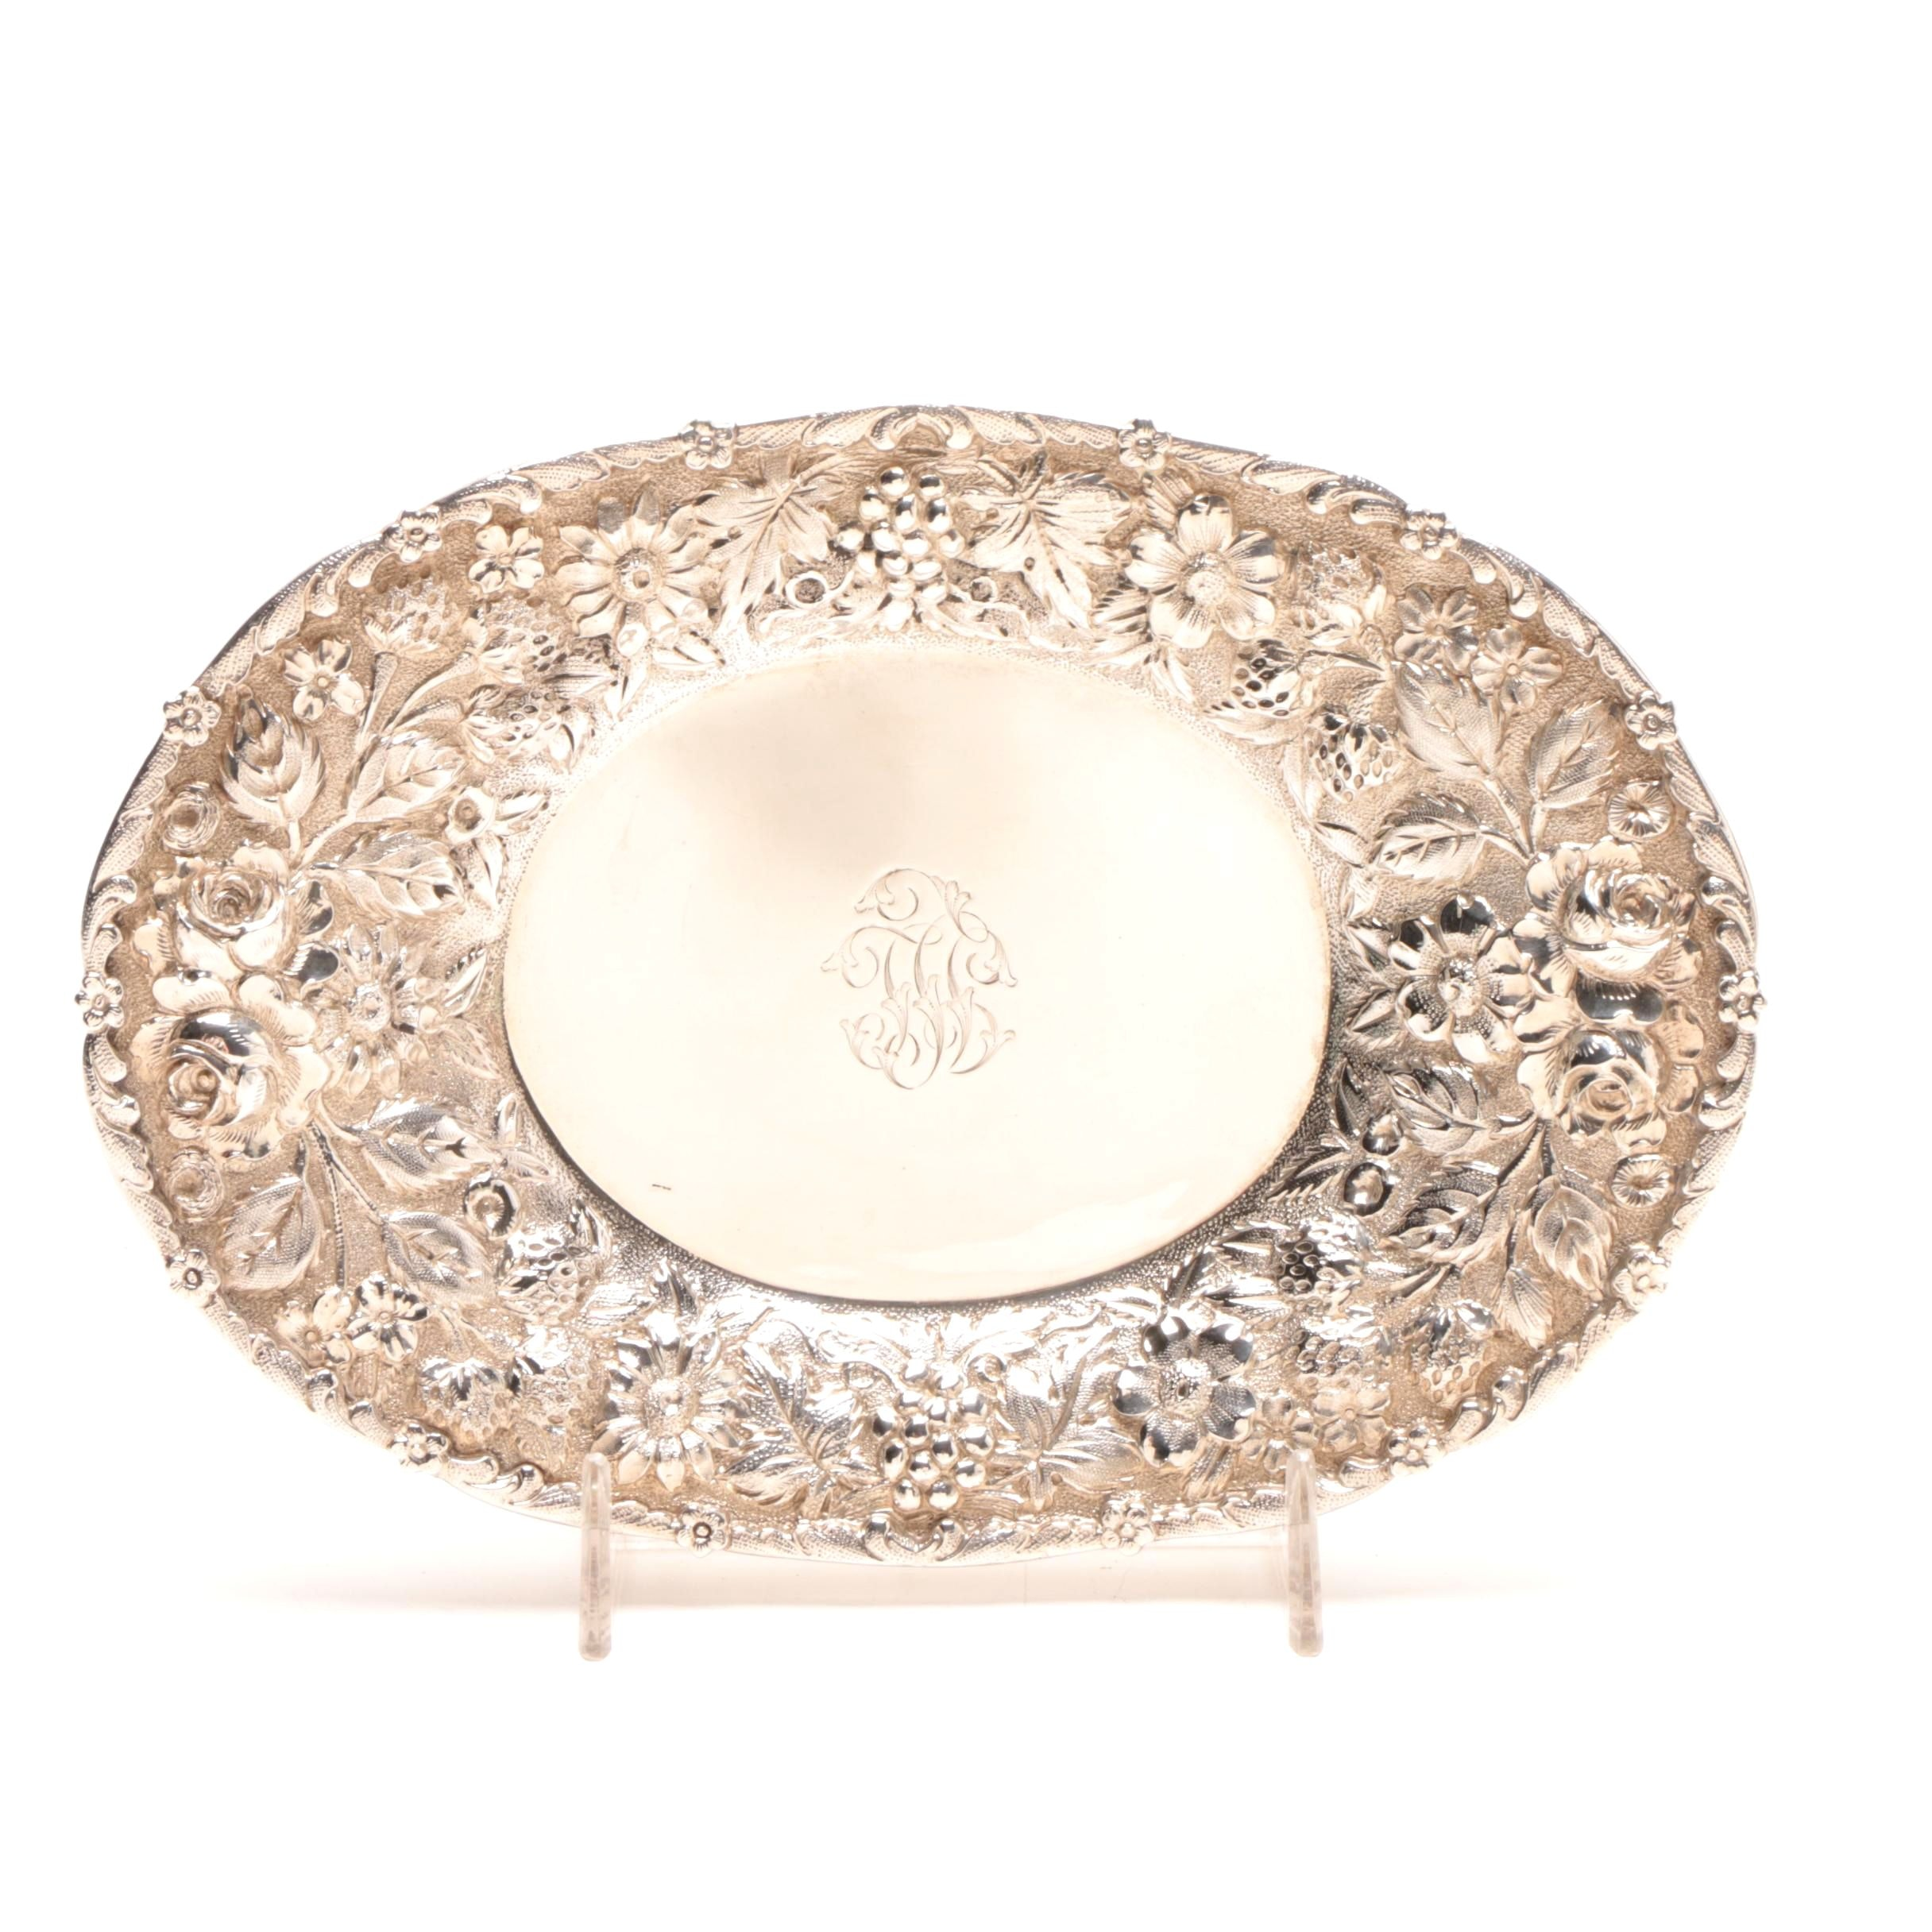 Vintage Sterling Silver Repoussé Candy Dish for Loring Andrews Co.